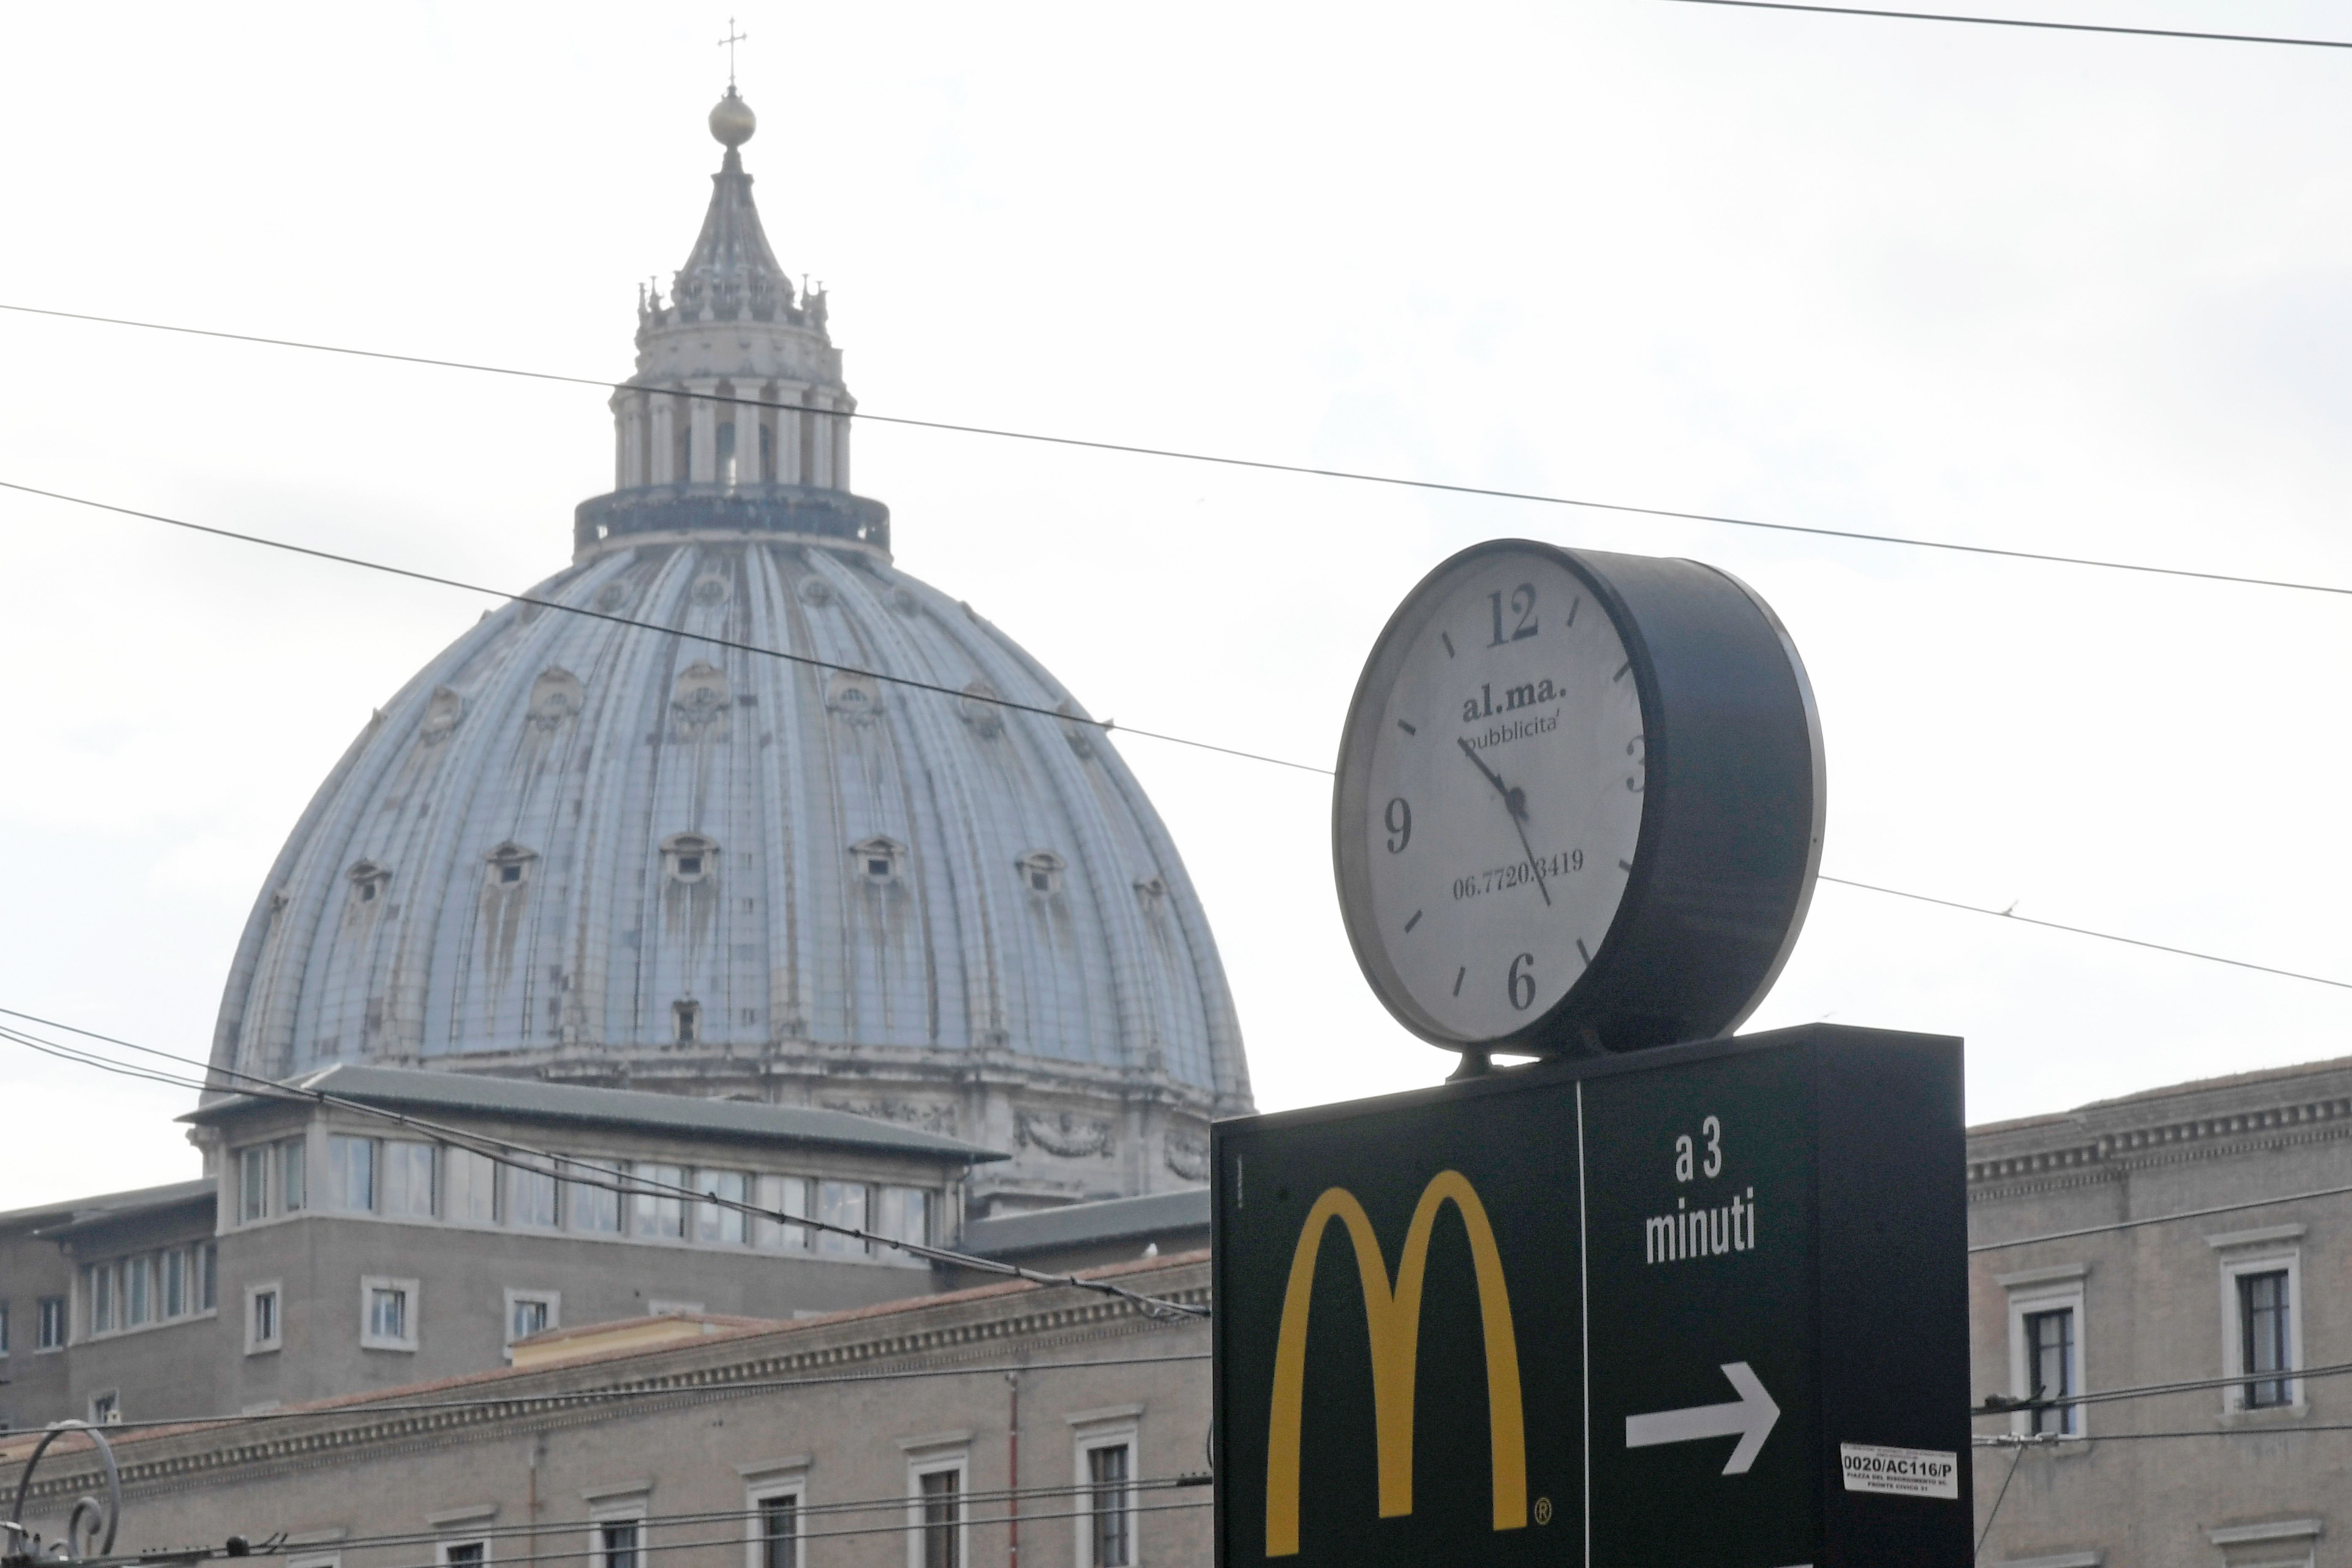 A recently opened McDonald's near the Vatican in Rome